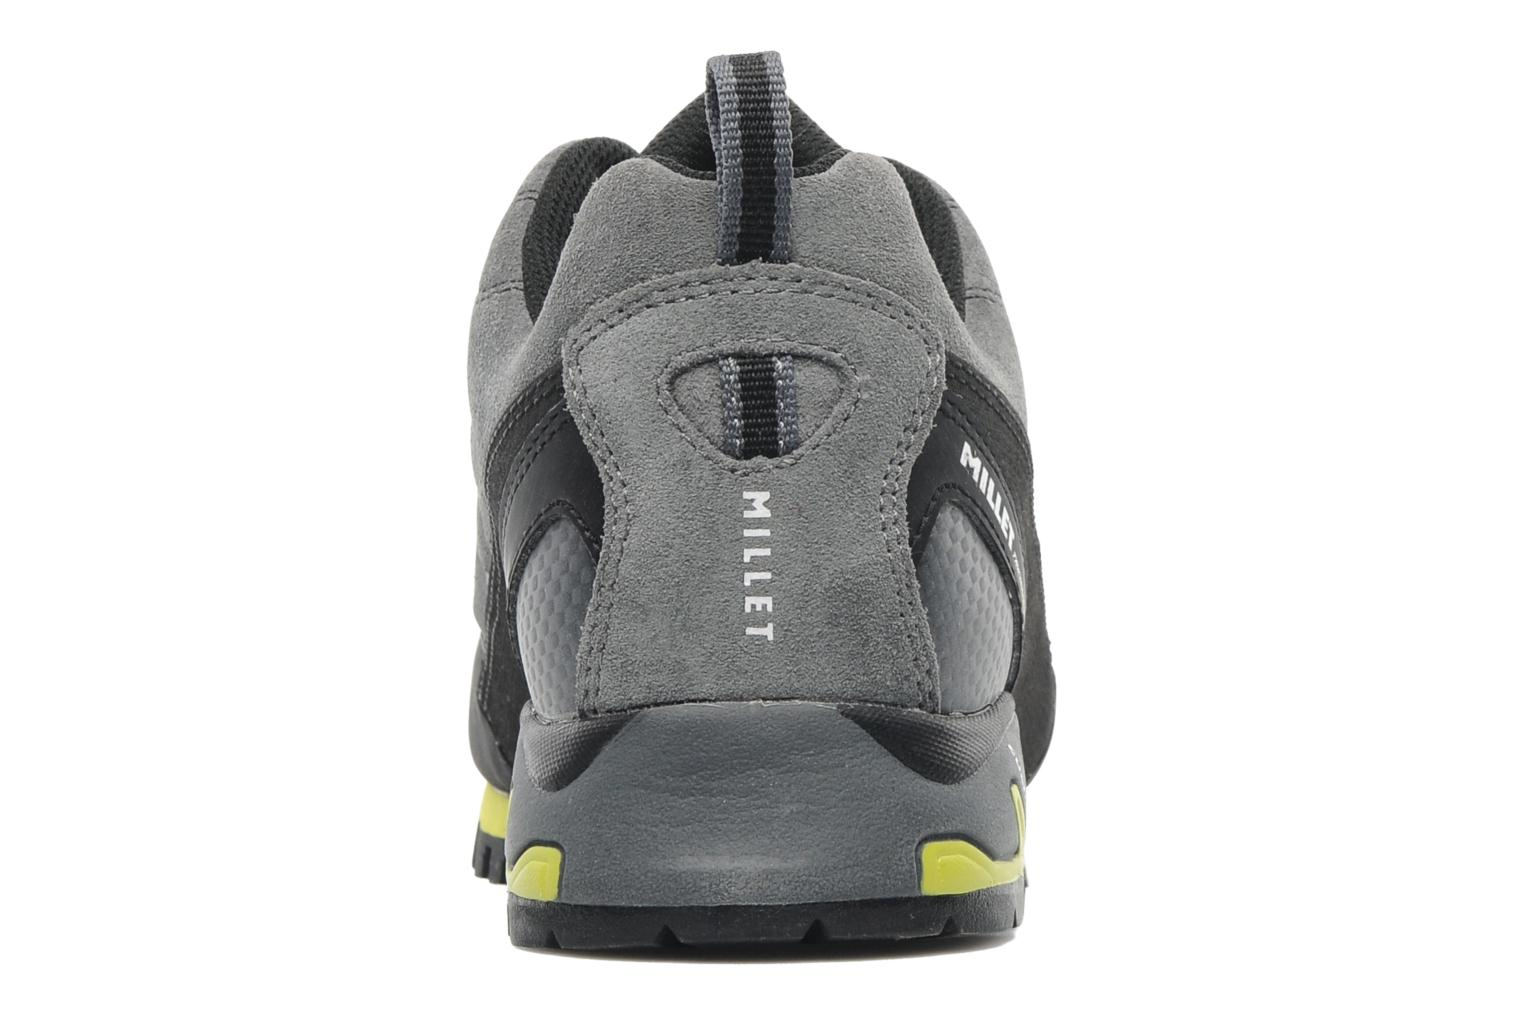 Trident Guide Anthracite/Acid Green